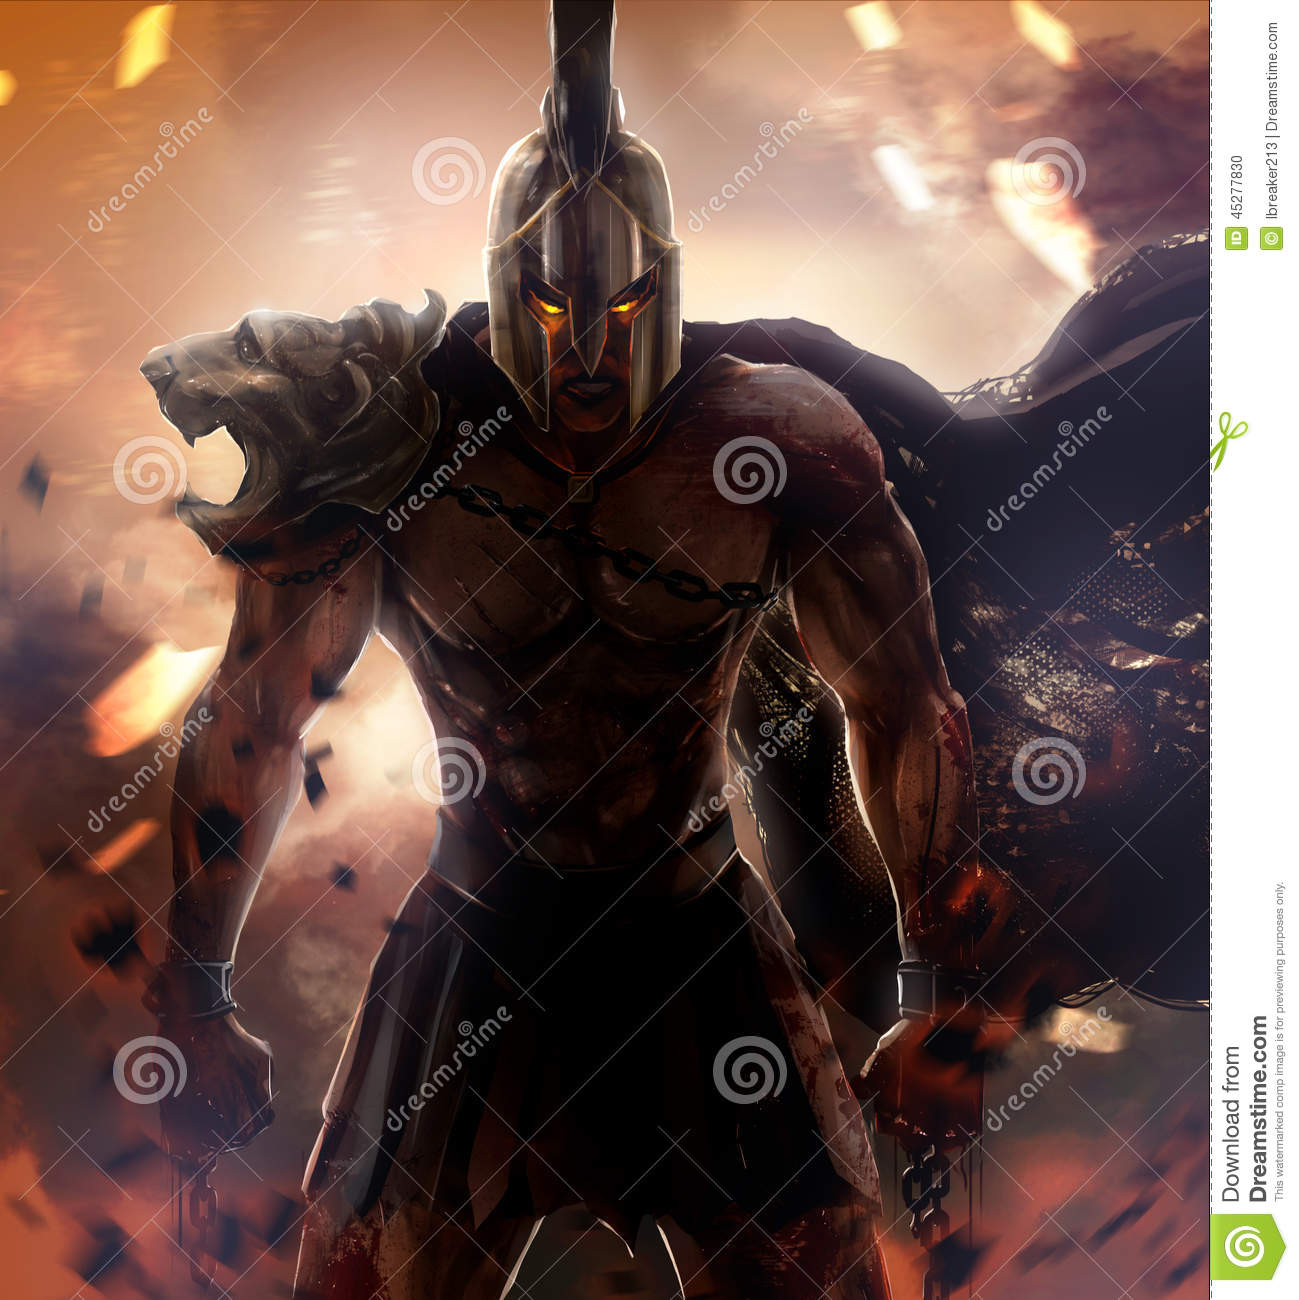 Spartan Warrior Stock Illustration - Image: 45277830